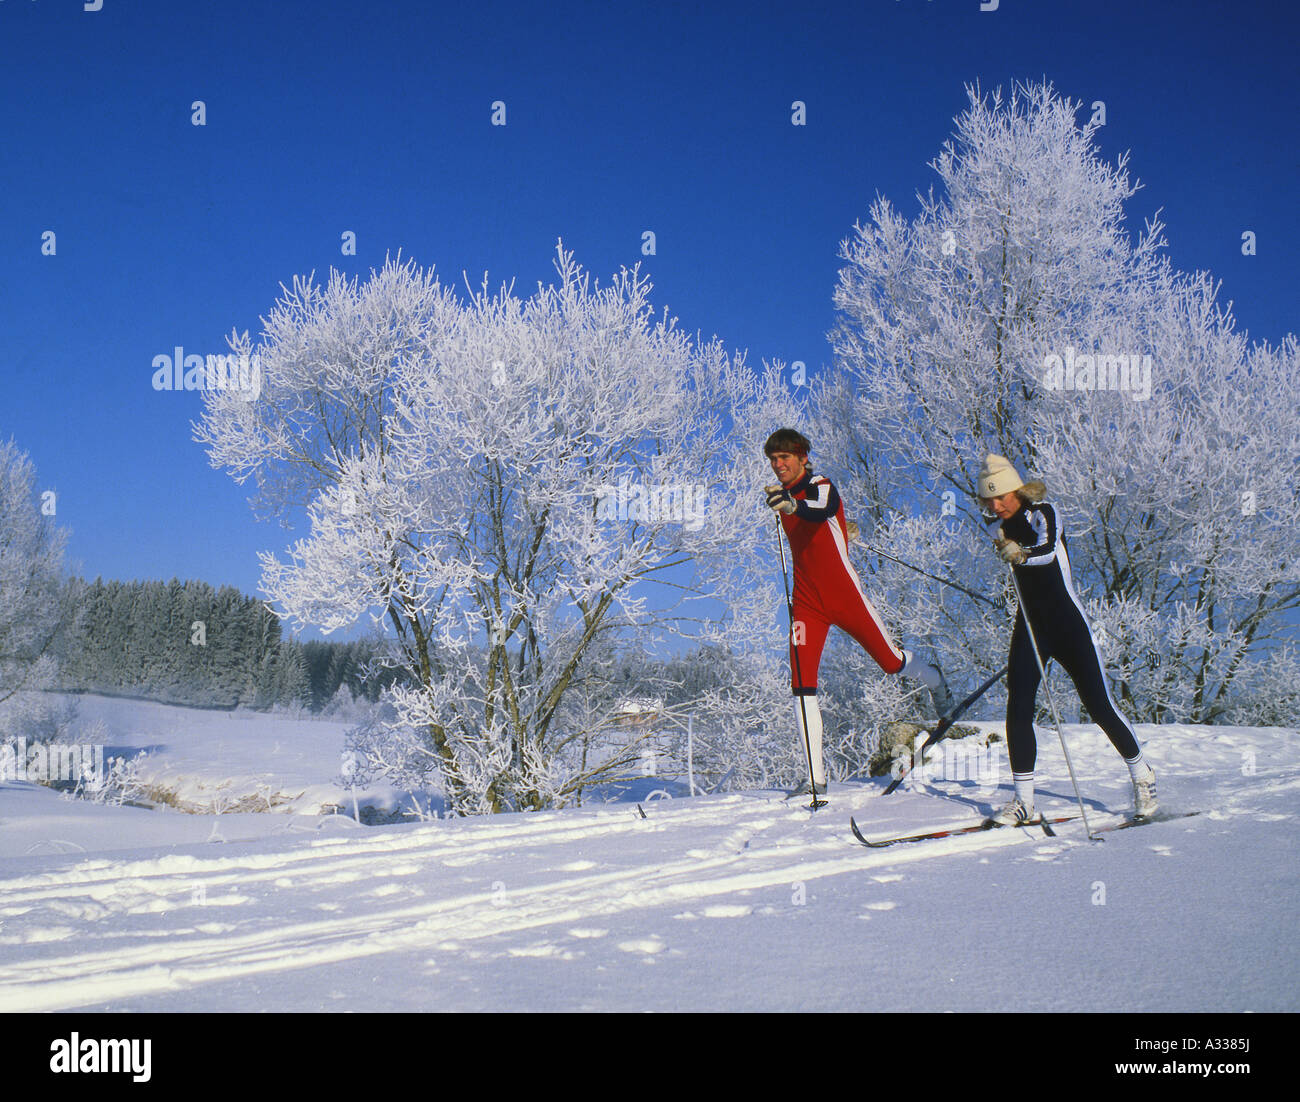 Cross country skier in front of hoarfrost trees - Stock Image